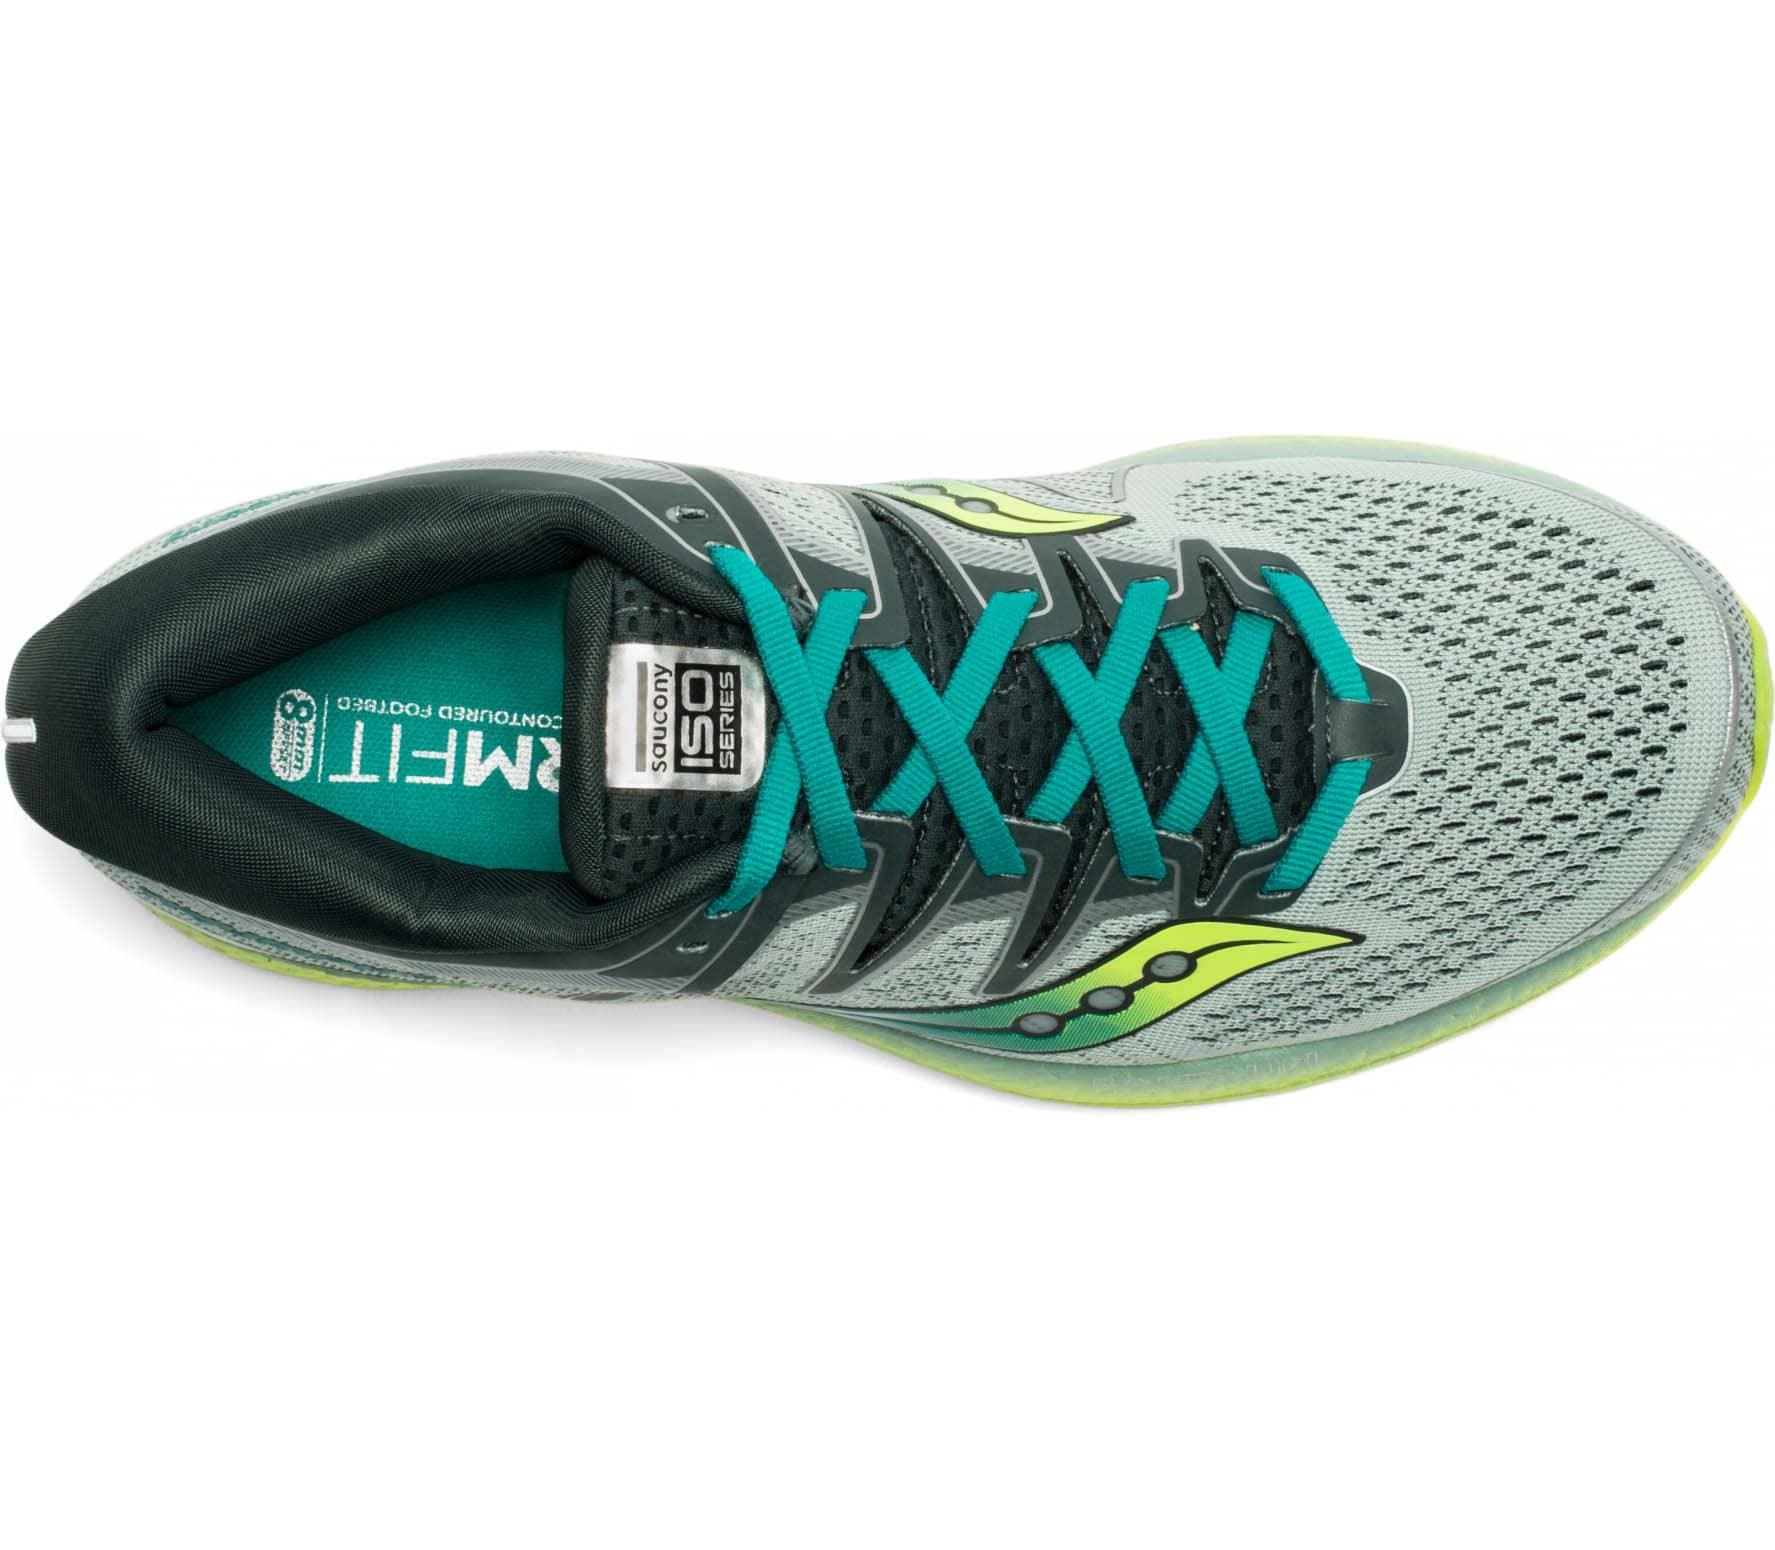 Saucony Triumph Iso 5 Men Running Shoes  green